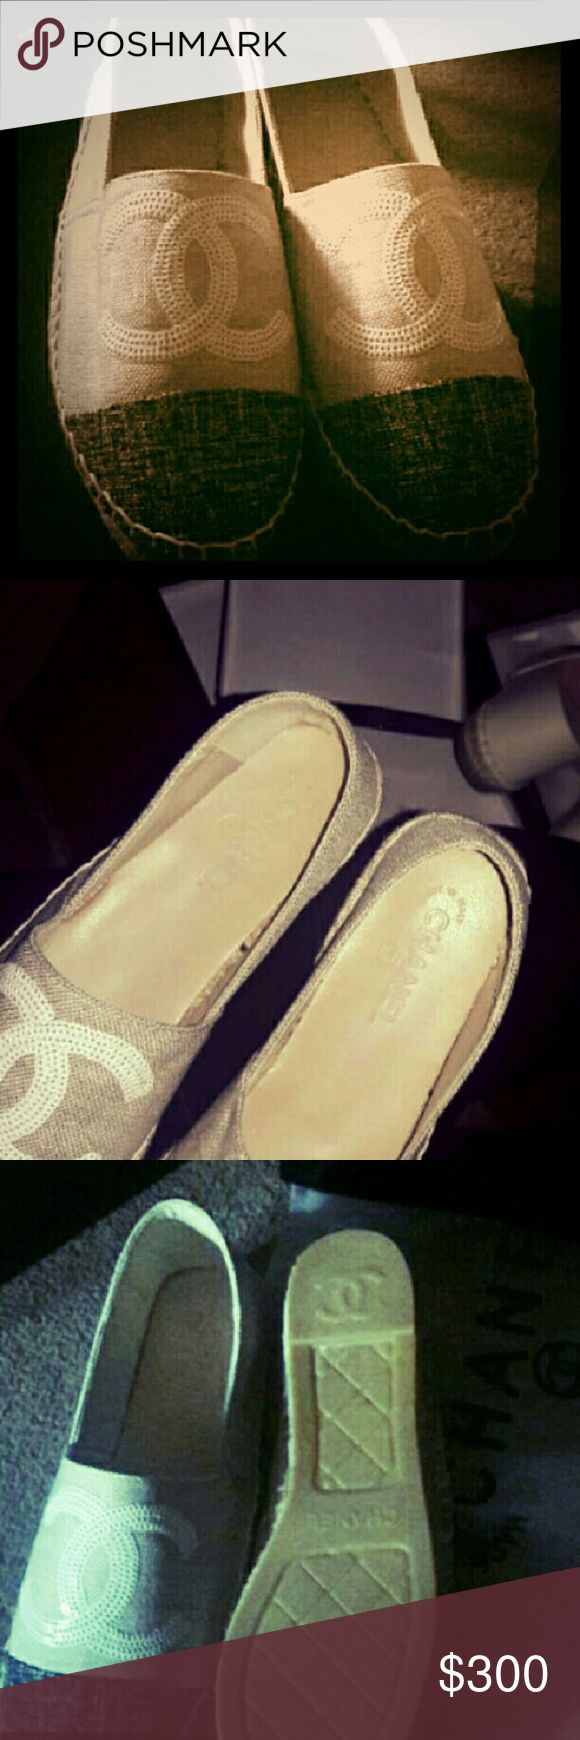 Chanel slip-ons new condition Heavy material New 2016 chanel slip-ons. Comfortable to wear. Size 37. Willing to negotiate price CHANEL Shoes Flats & Loafers